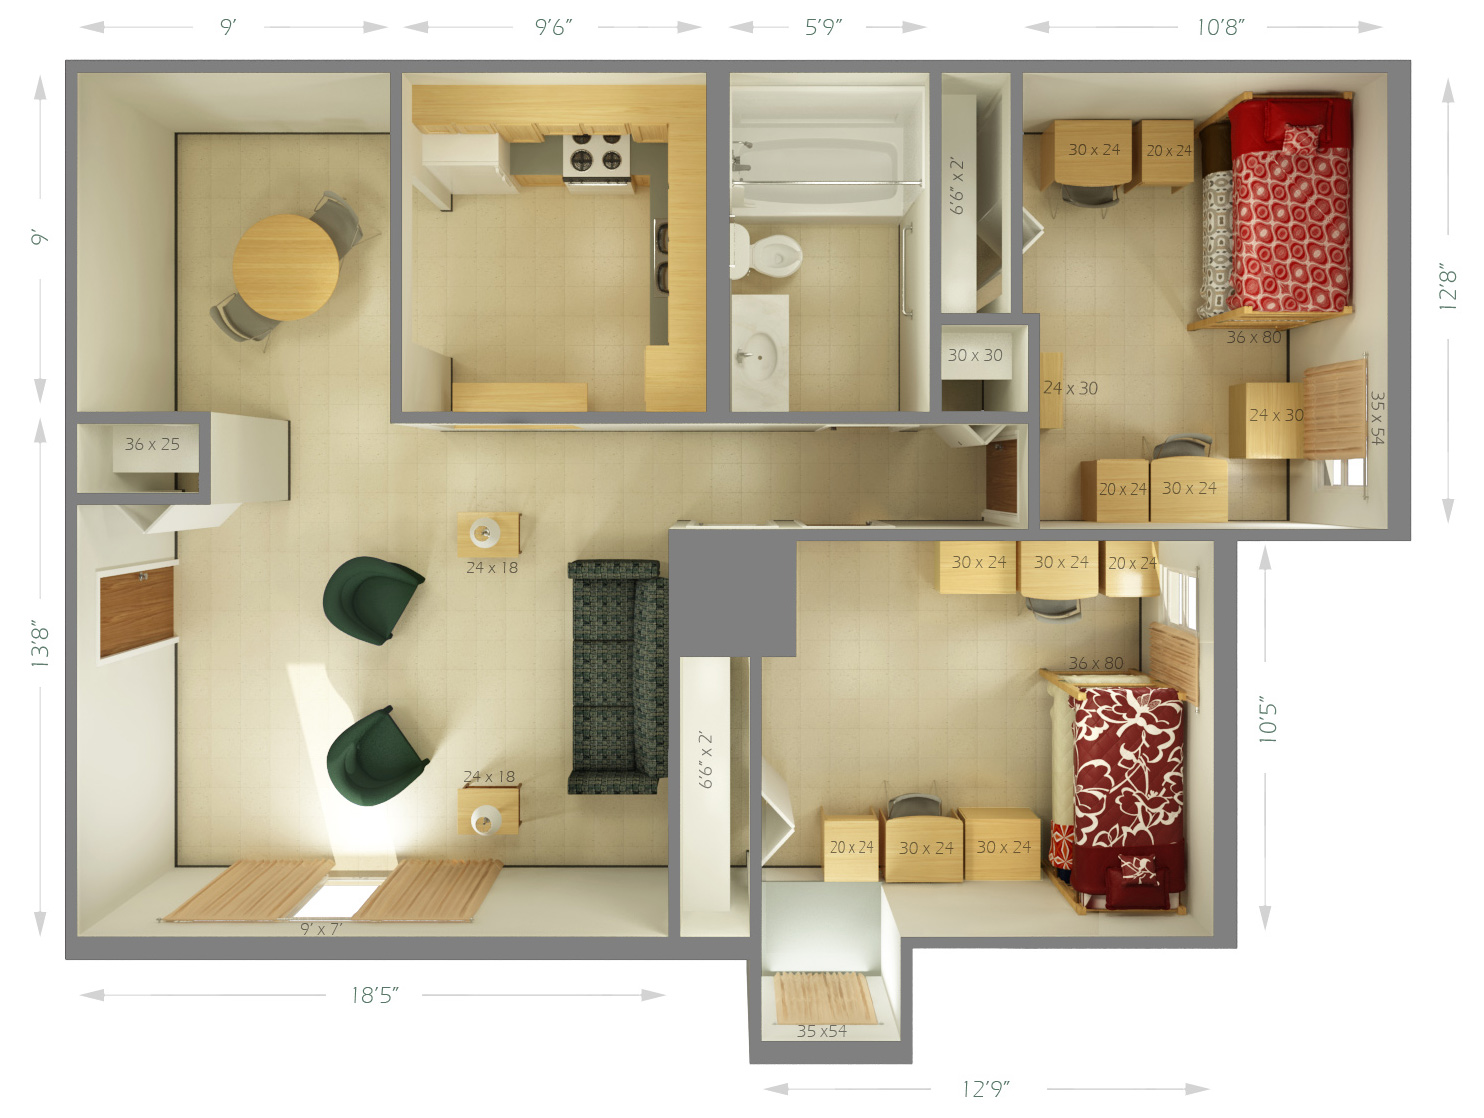 University housing cougar village room dimensions siue for Furniture university village